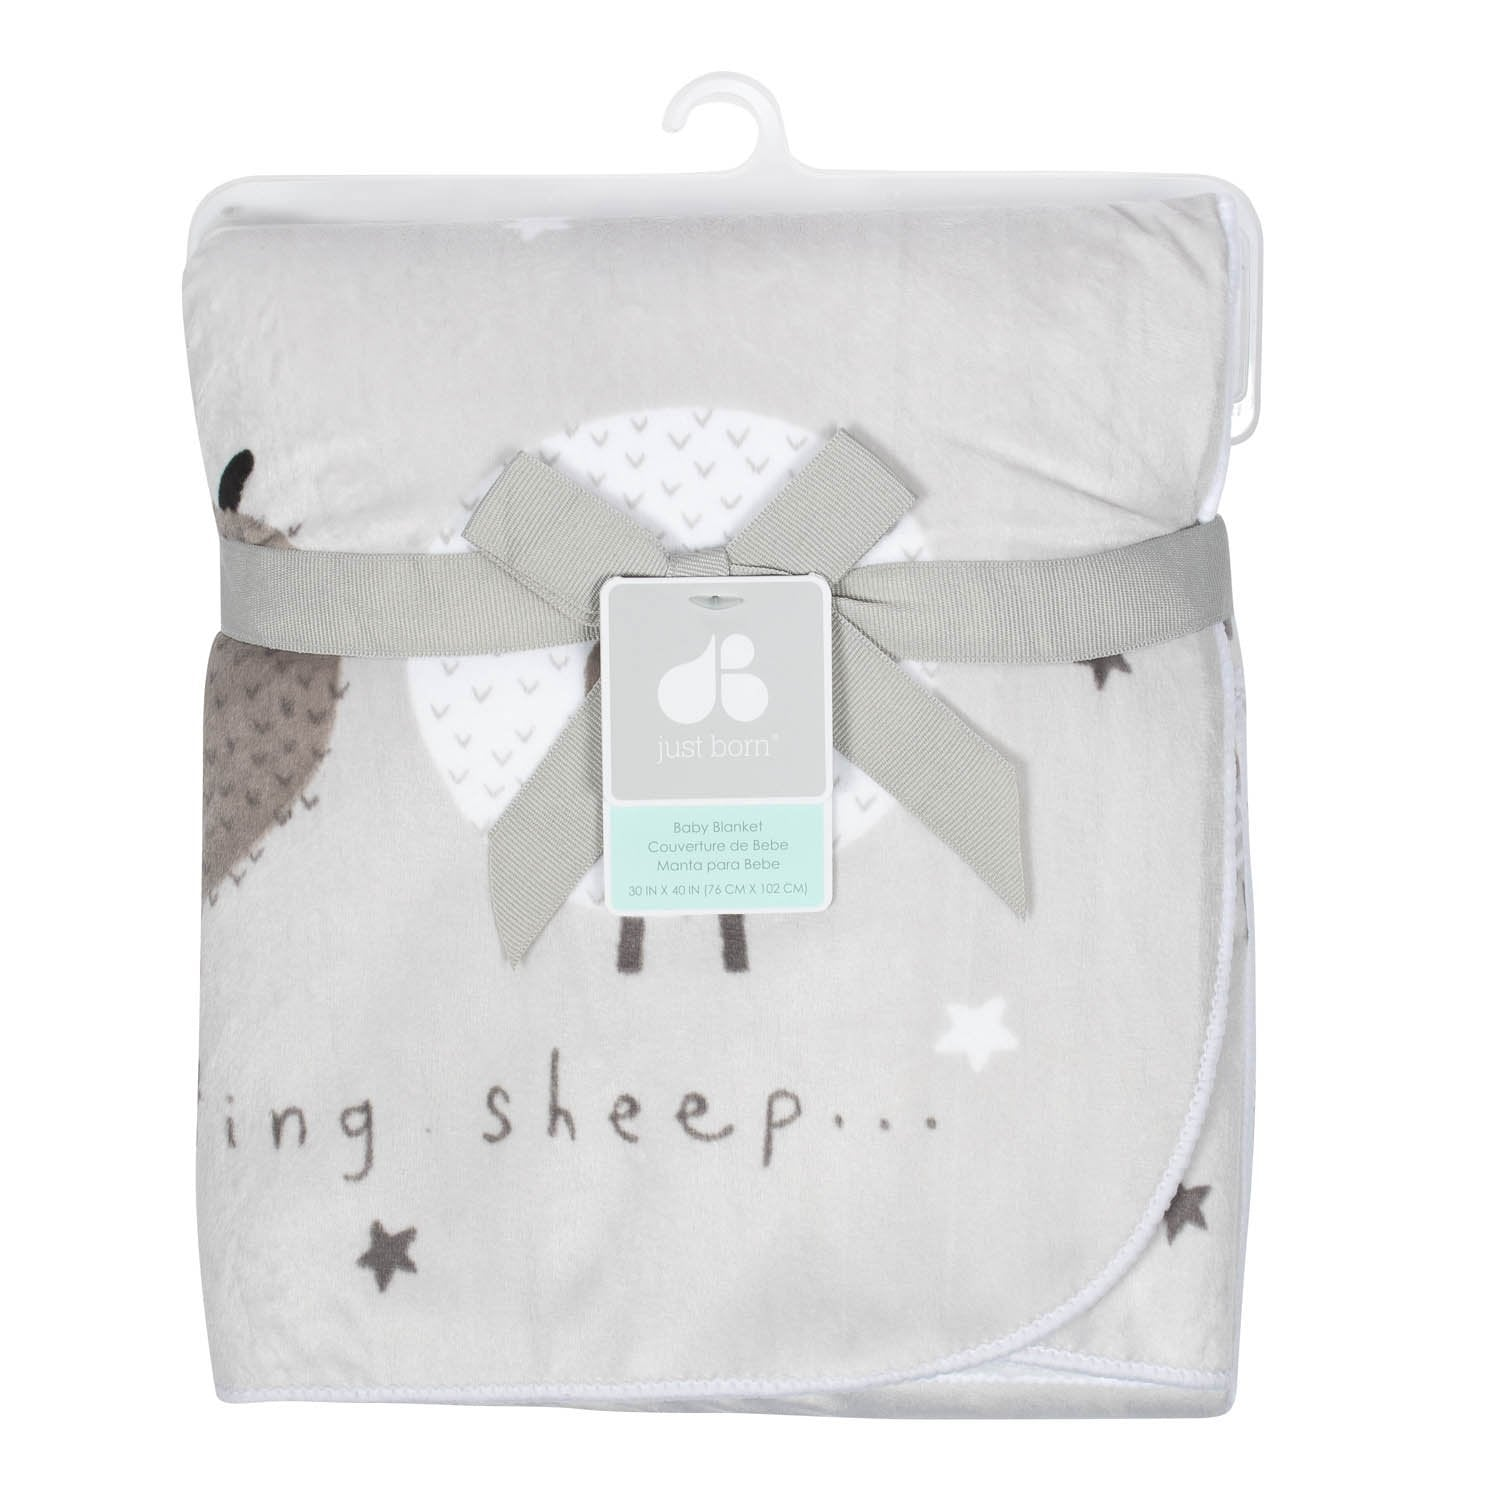 Just Born One World Collection Plush Blanket - Counting Sheep-Gerber Childrenswear